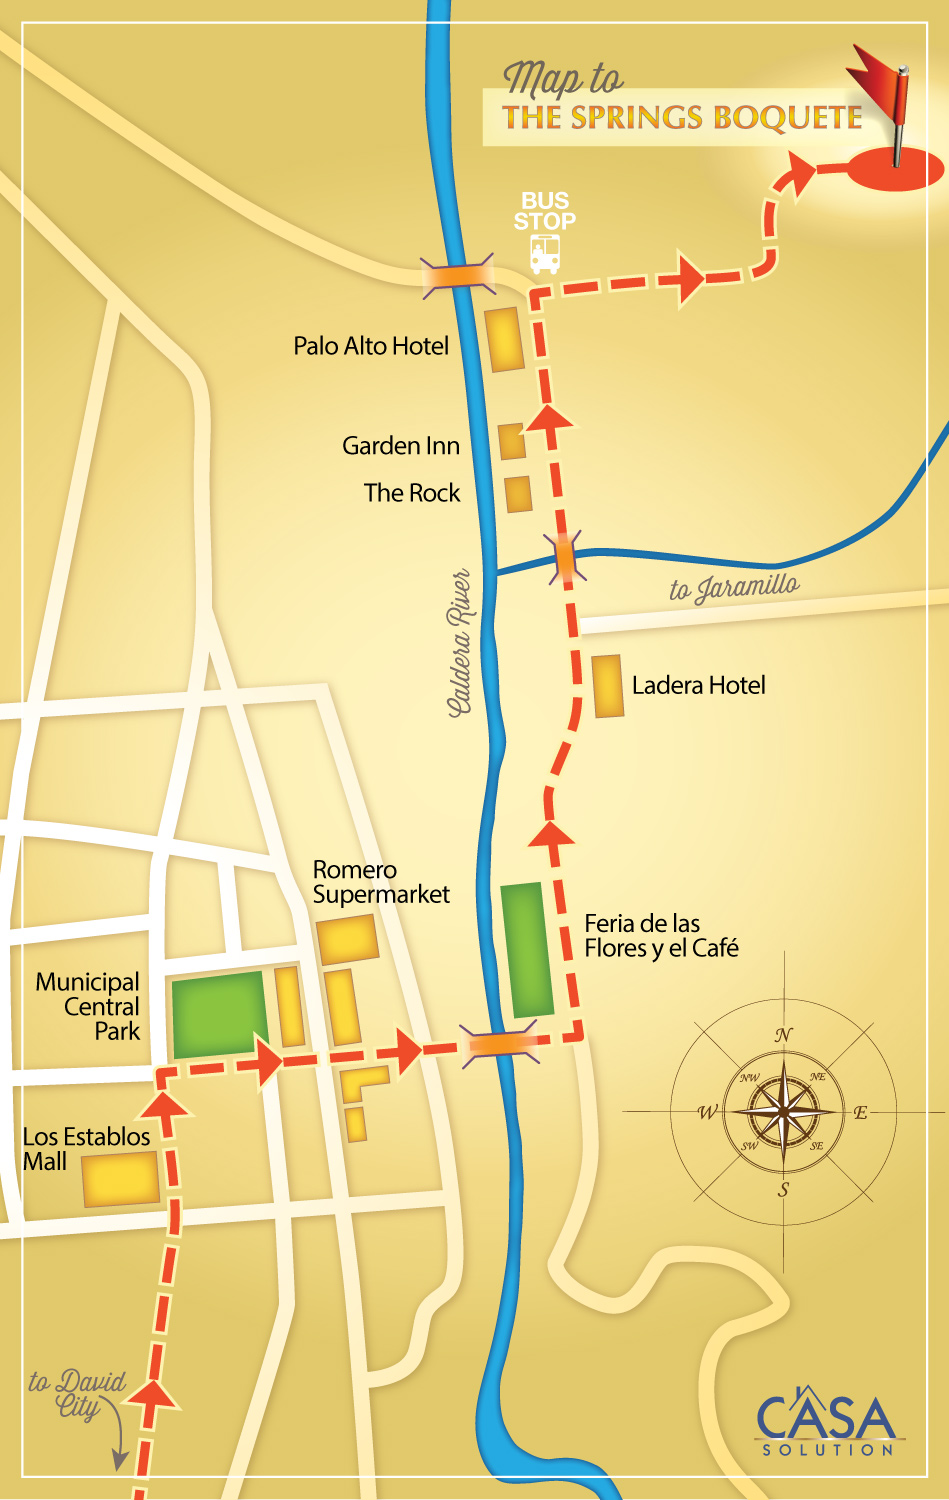 map-springs-boquete-2014